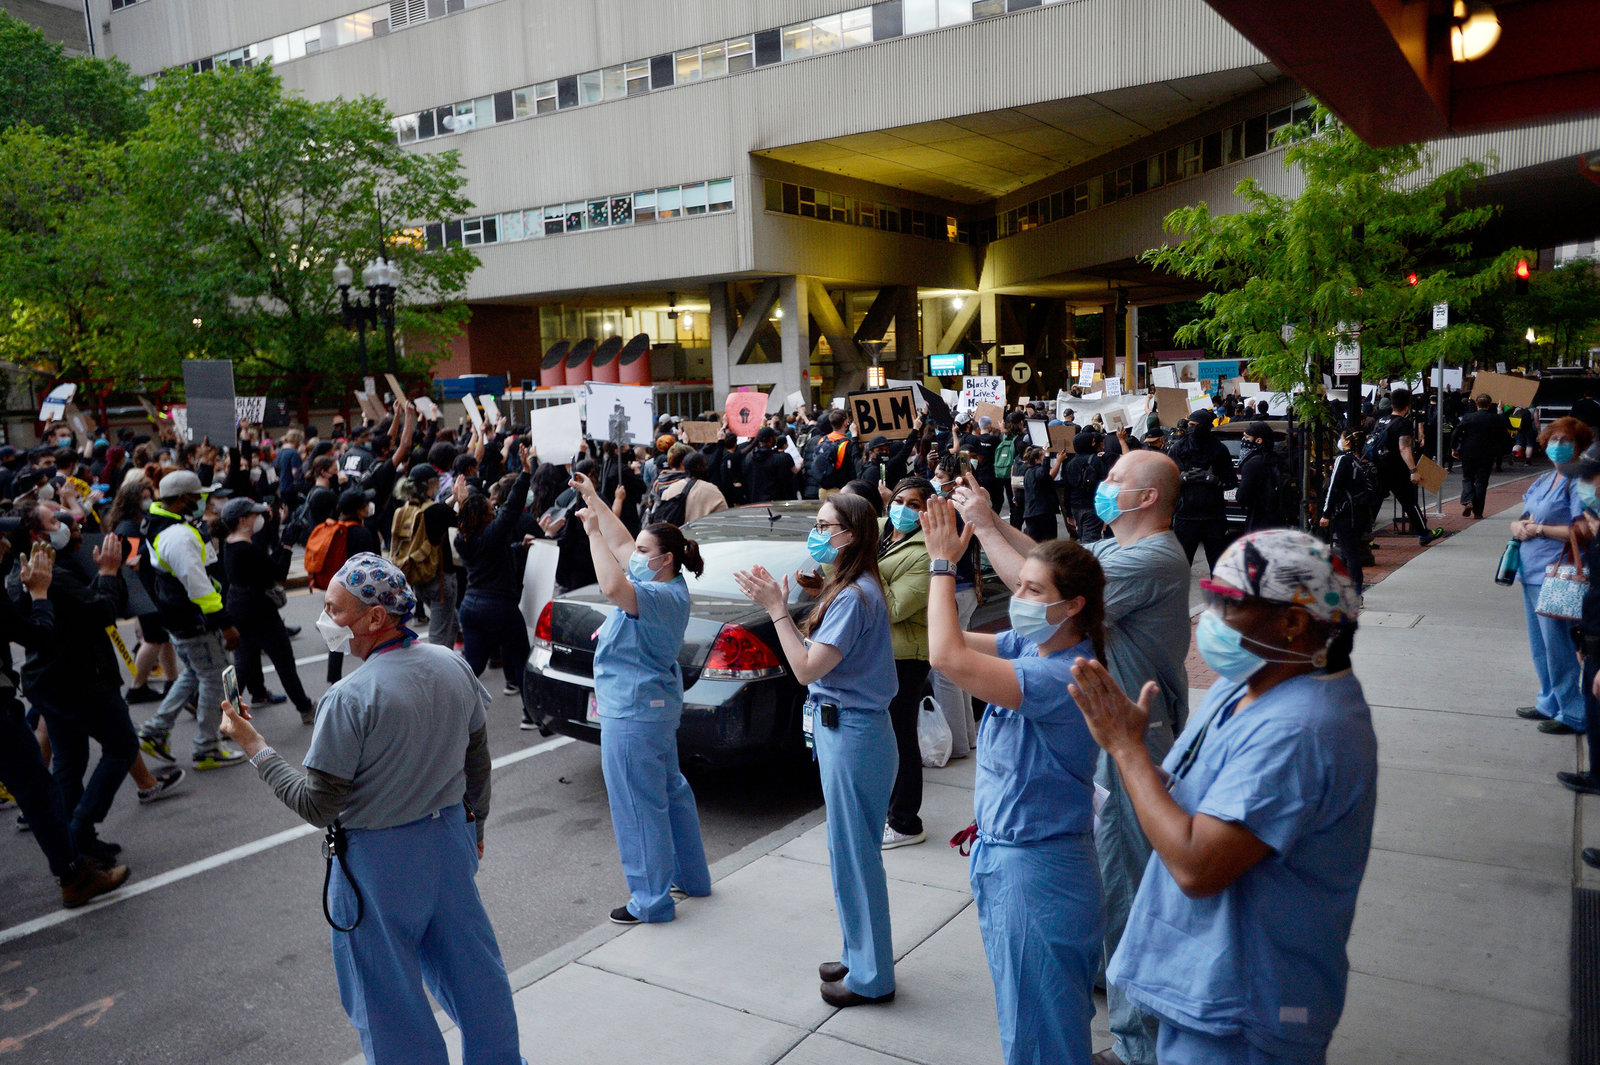 Medical workers applaud protesters outside a hospital during a demonstration over the death of George Floyd in Boston on Sunday.